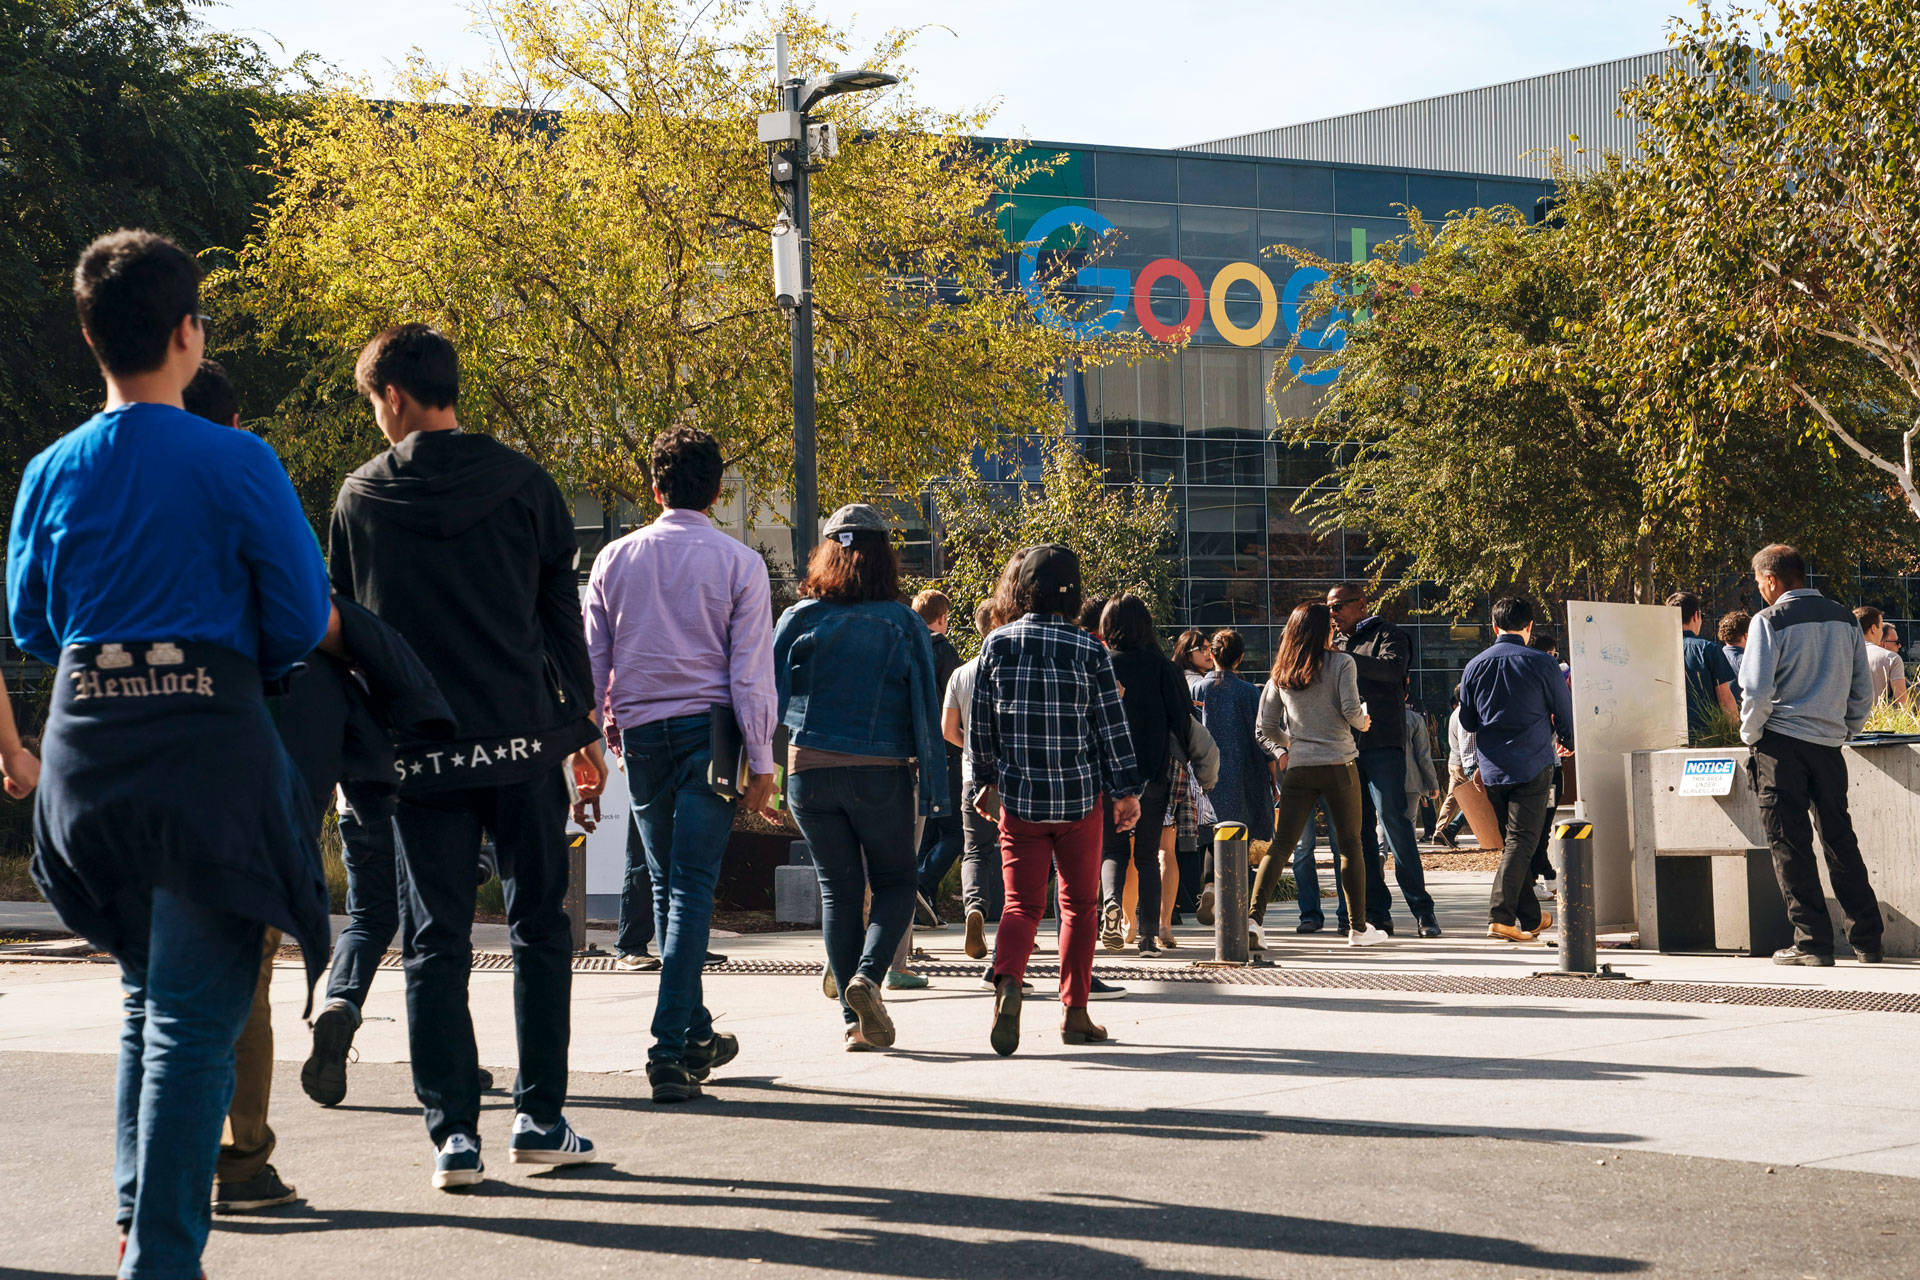 Google employees walk off the job to protest the company's handling of sexual misconduct claims, on Nov. 1, 2018, in Mountain View. Mason Trinca/Getty Images